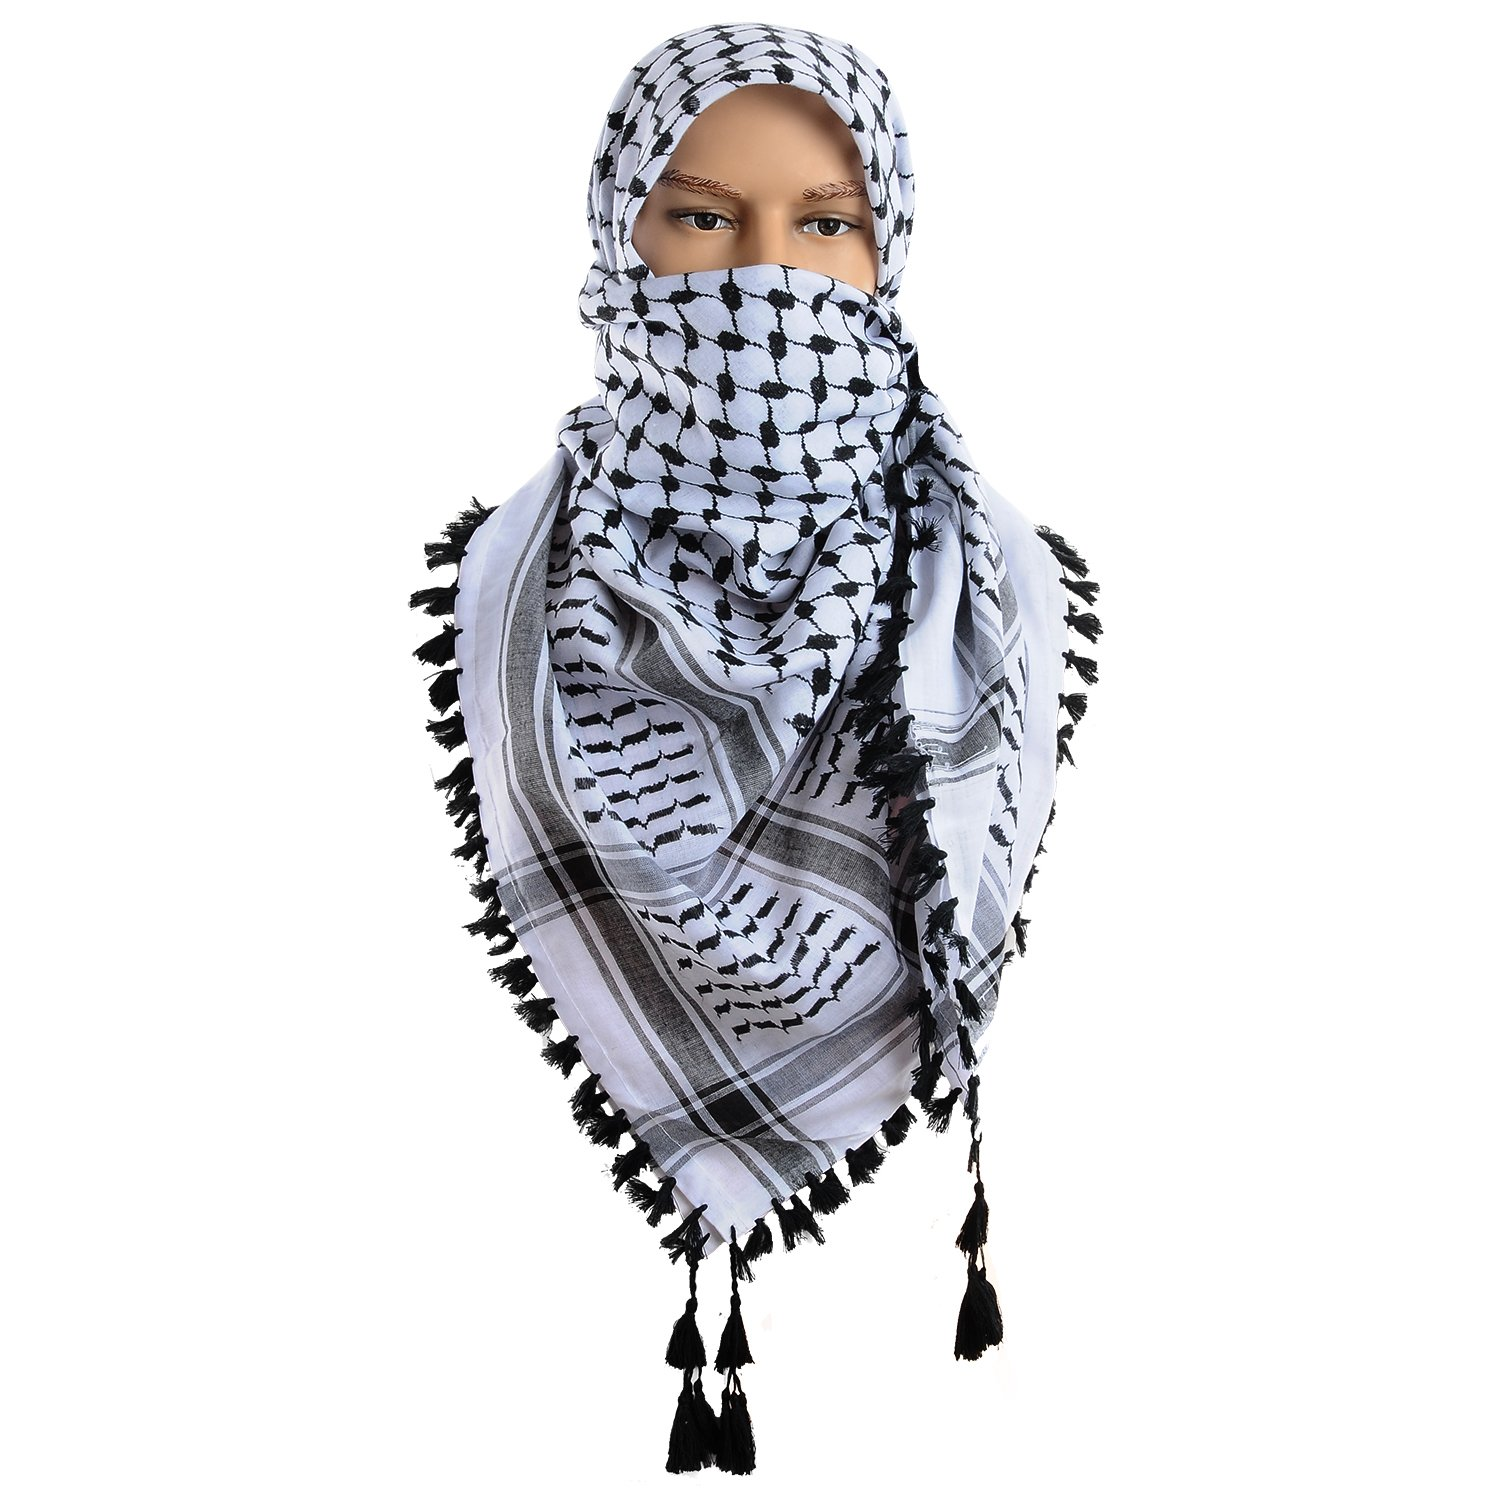 Micoop Large Size Premium Shemagh Scarf Arab Military Tactical Desert Scarf Wrap(48 by 48 inches) (White Black)